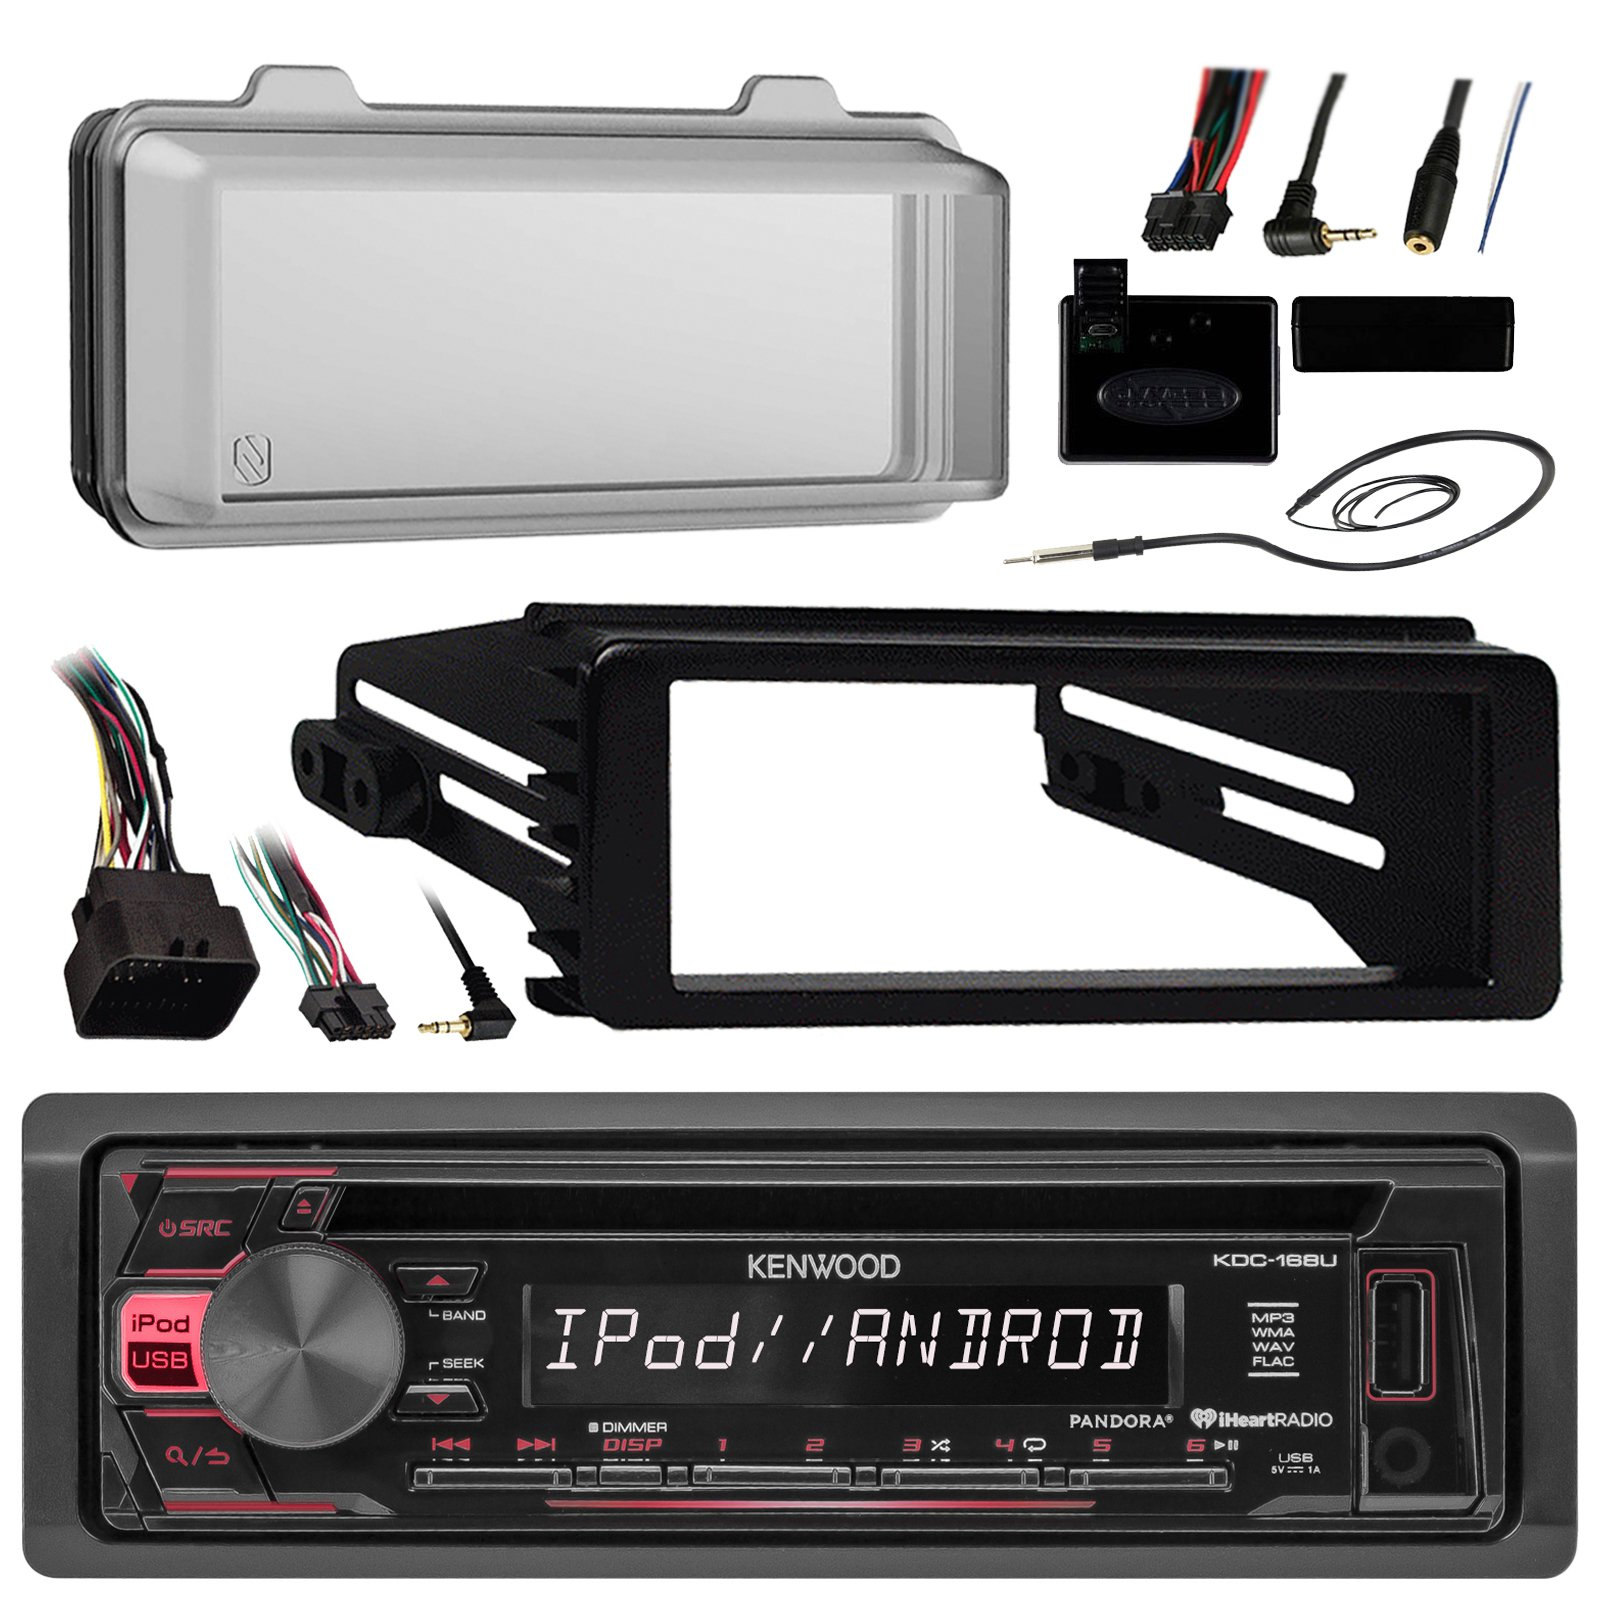 Kenwood KDC168U Radio USB AUX CD Player Receiver W/ Cover - Bundle With Install Dash Kit + Handle Bar Control + Enrock Antenna for 98 2013 Harley Touring Flht Flhx Flhtc Motorcycle Bike